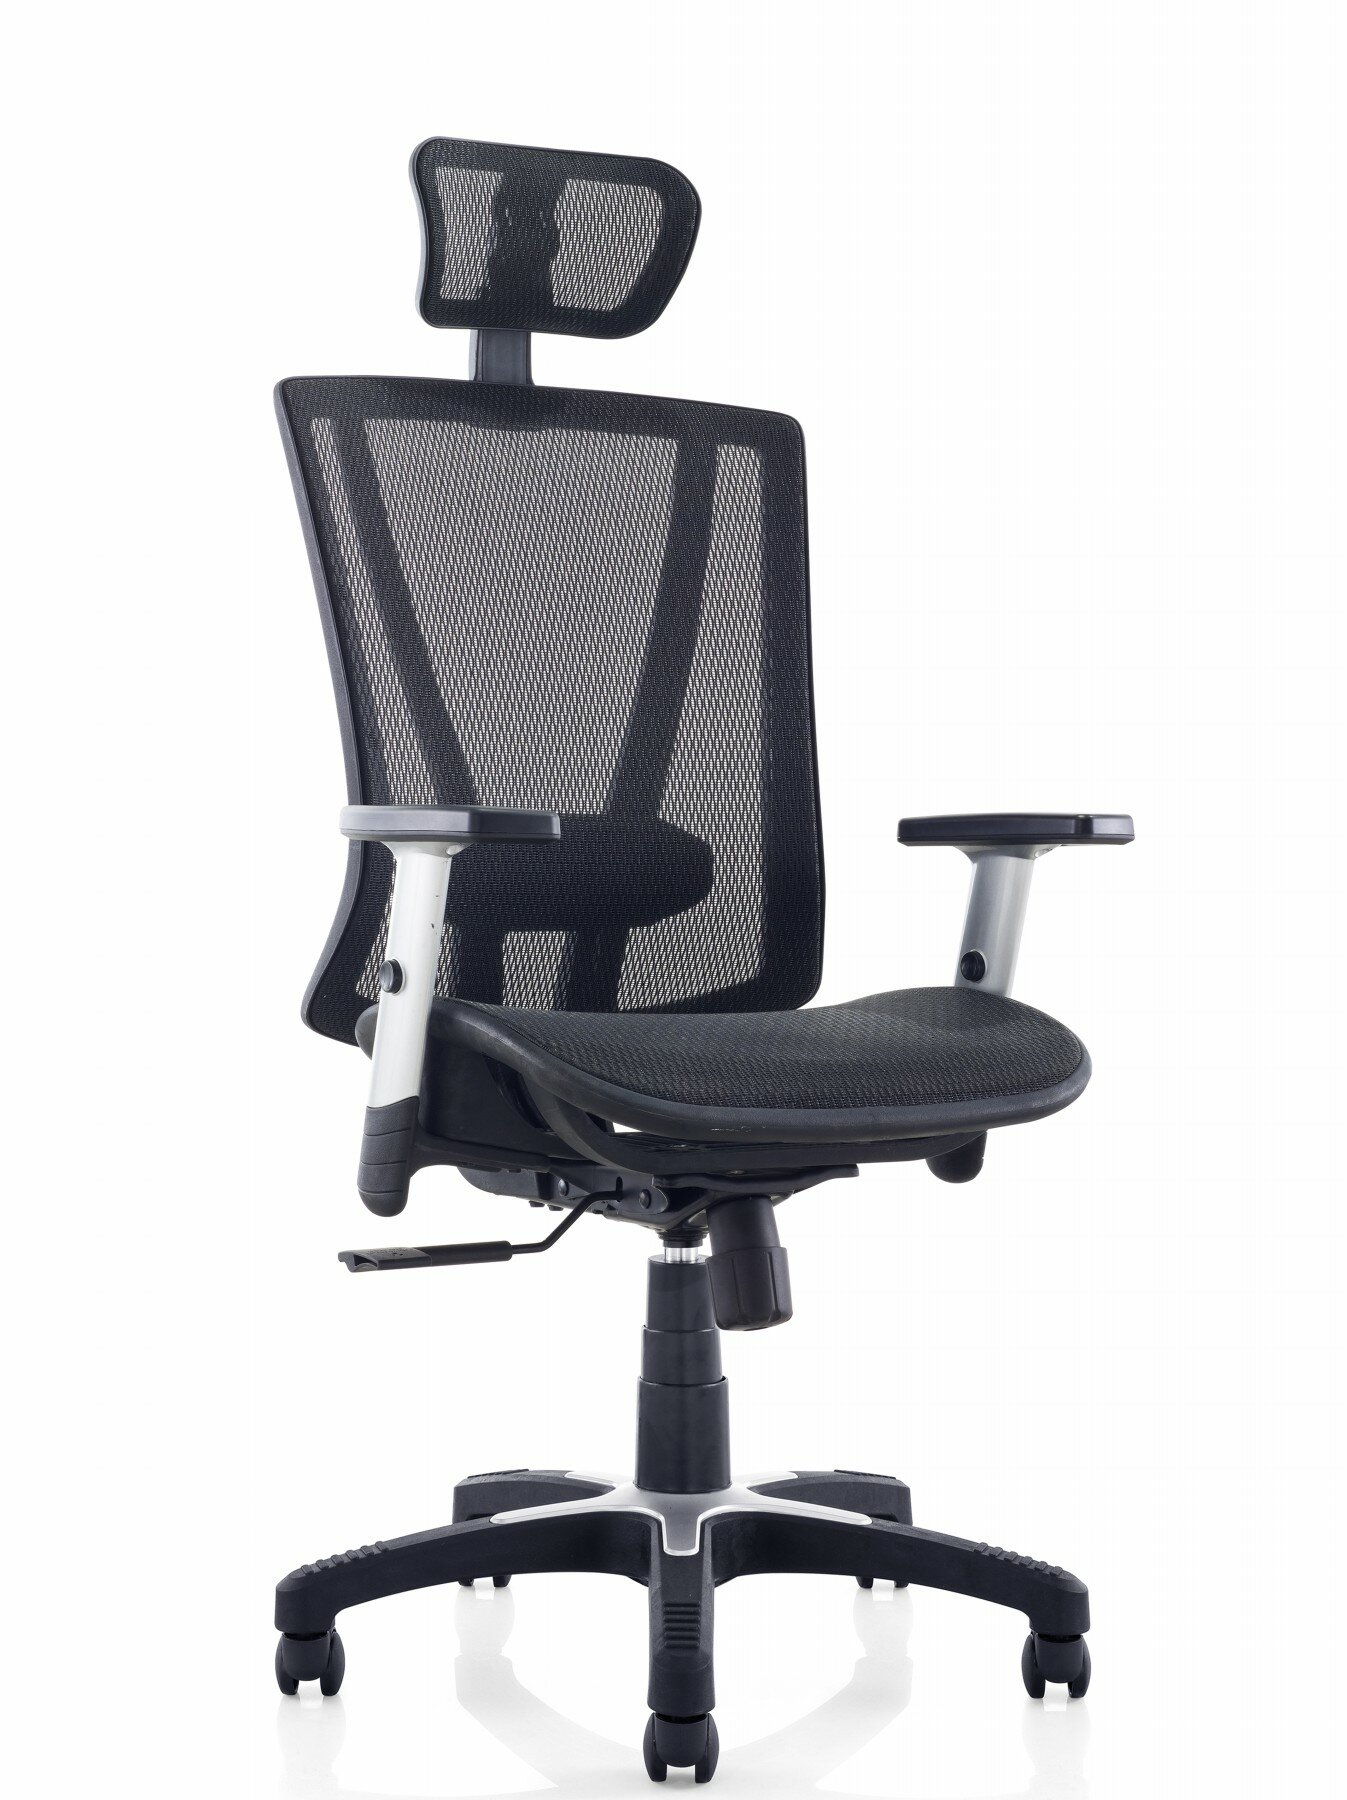 Ergomax Office Mesh Desk Chair U0026 Reviews | Wayfair